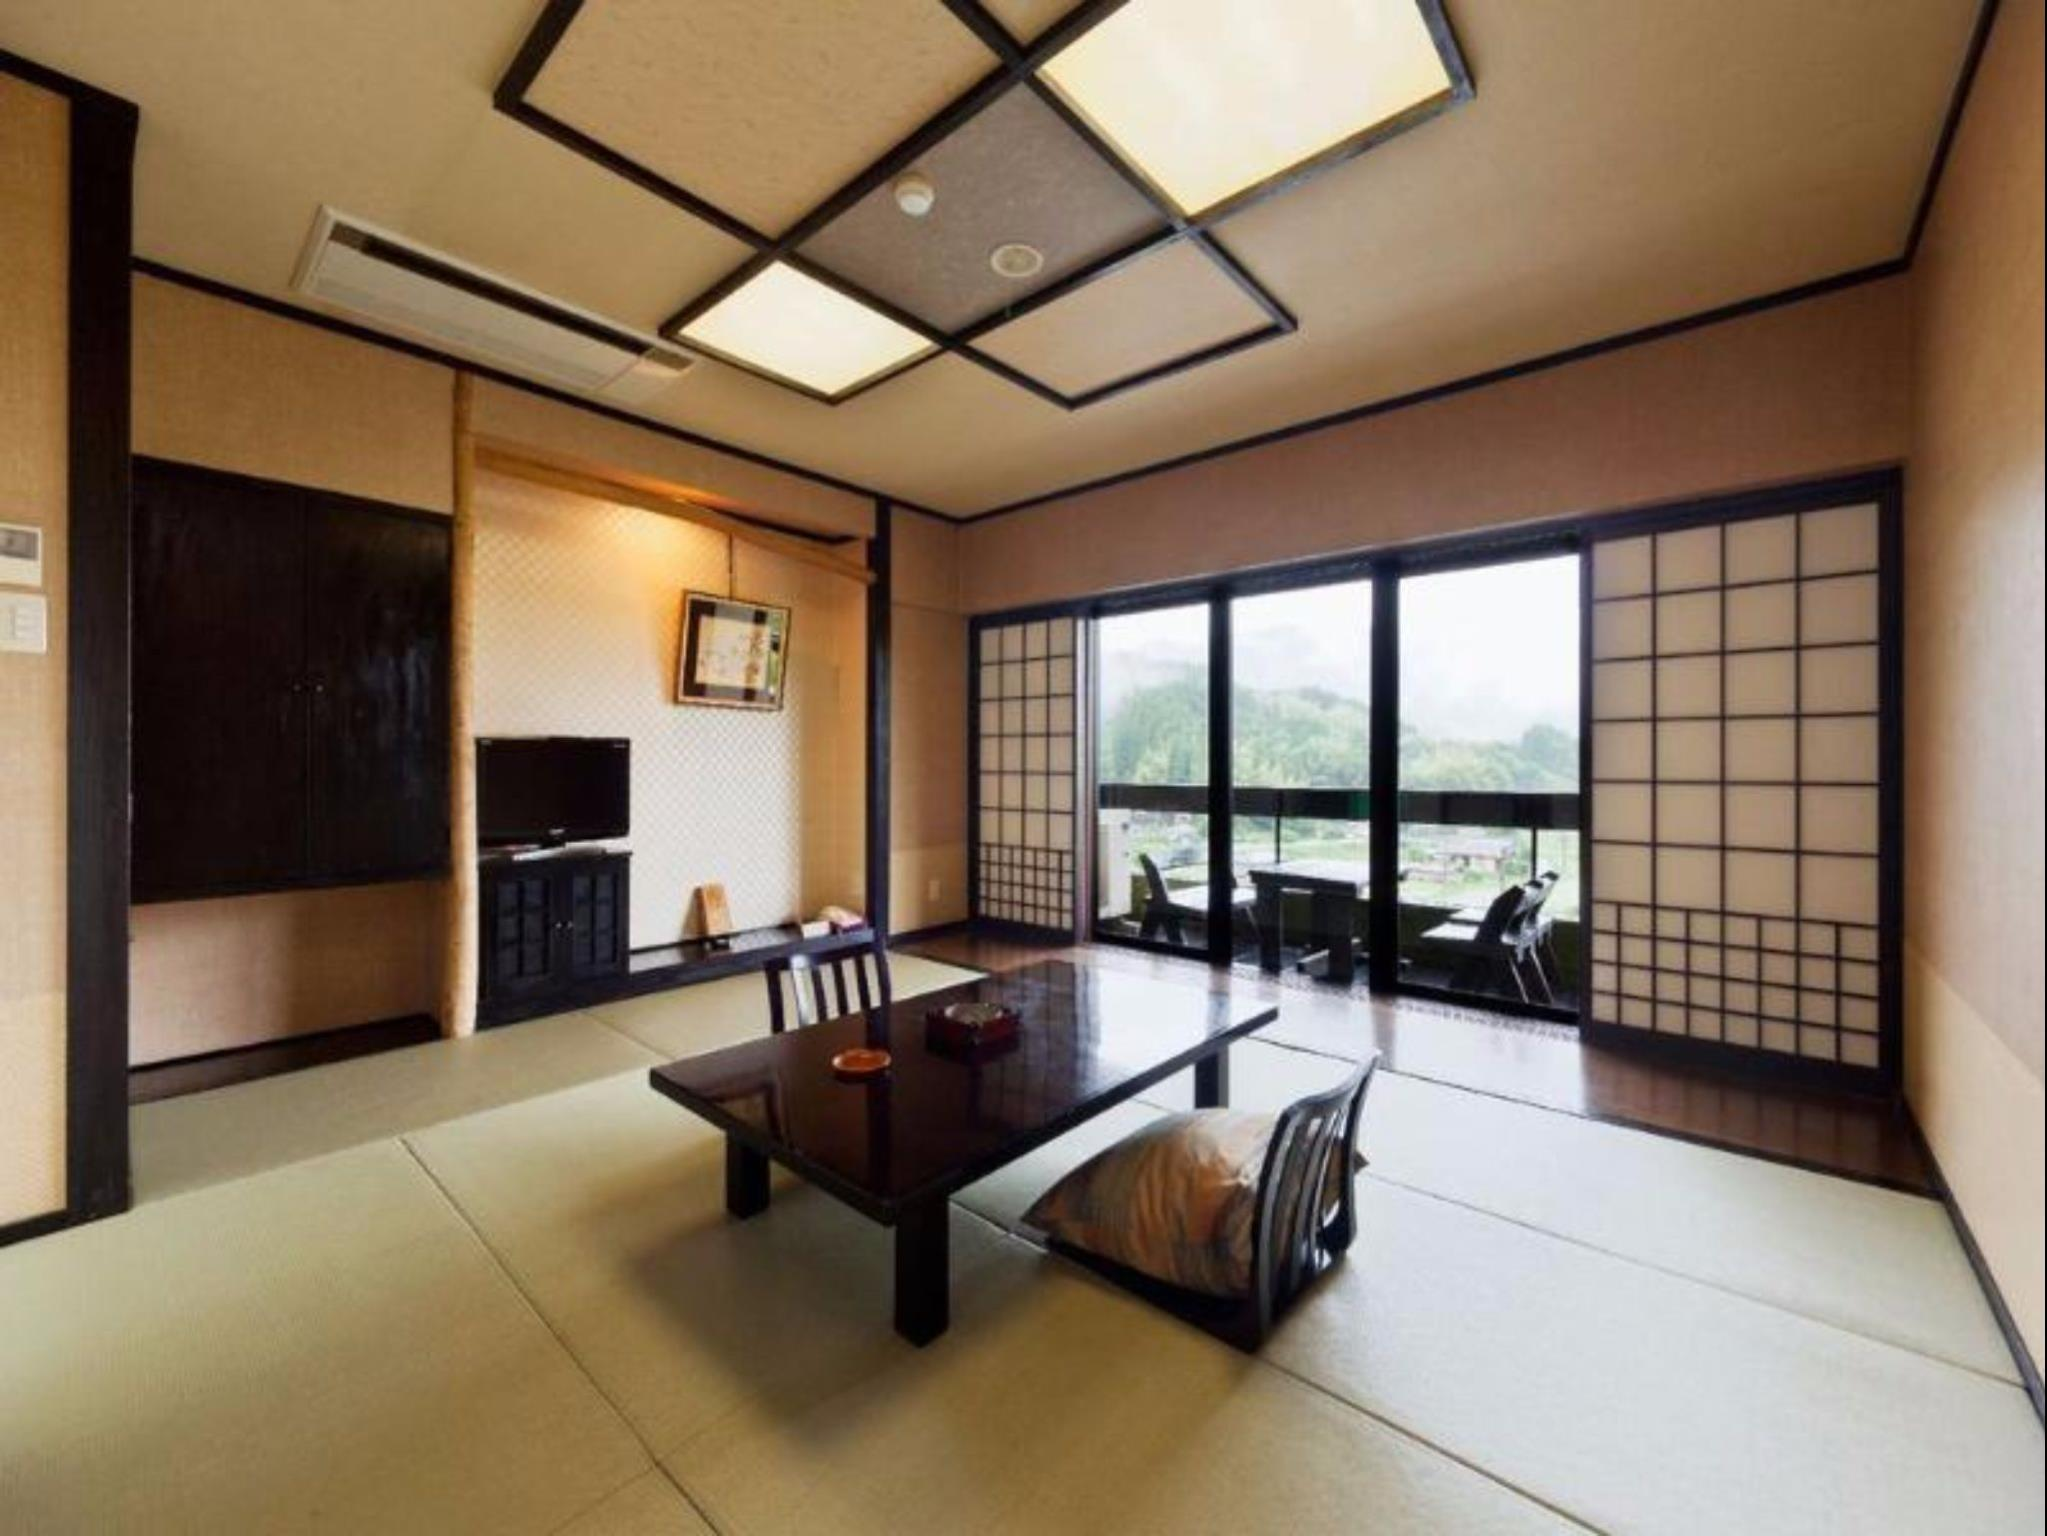 Mount Yufu View Japanese Style Room for 4 People